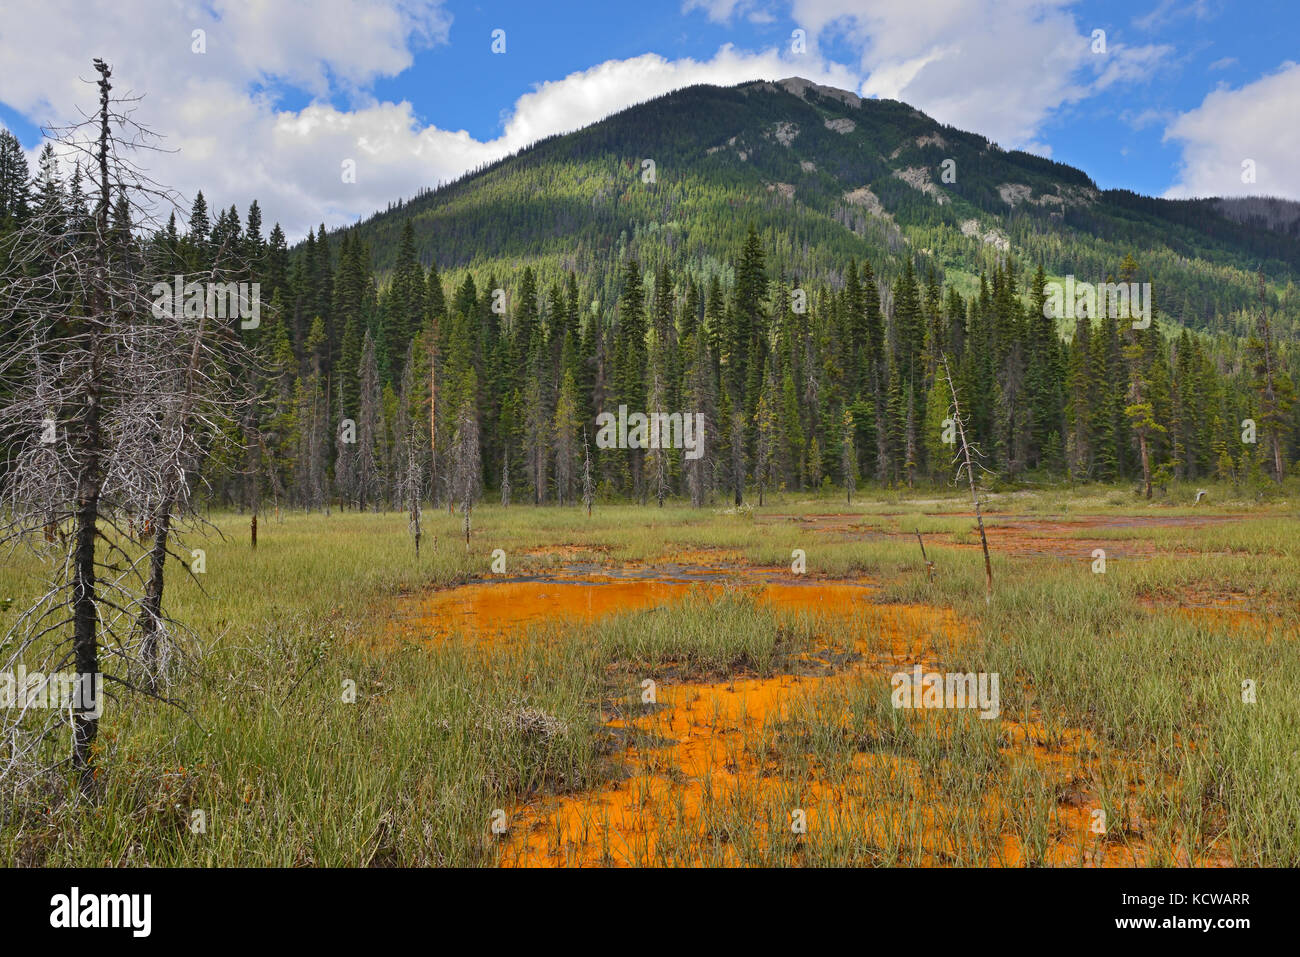 Paint Pots. Iron-rich cold mineral springs.  The Canadian Rocky Mountains, Kootenay National Park, British Columbia, - Stock Image